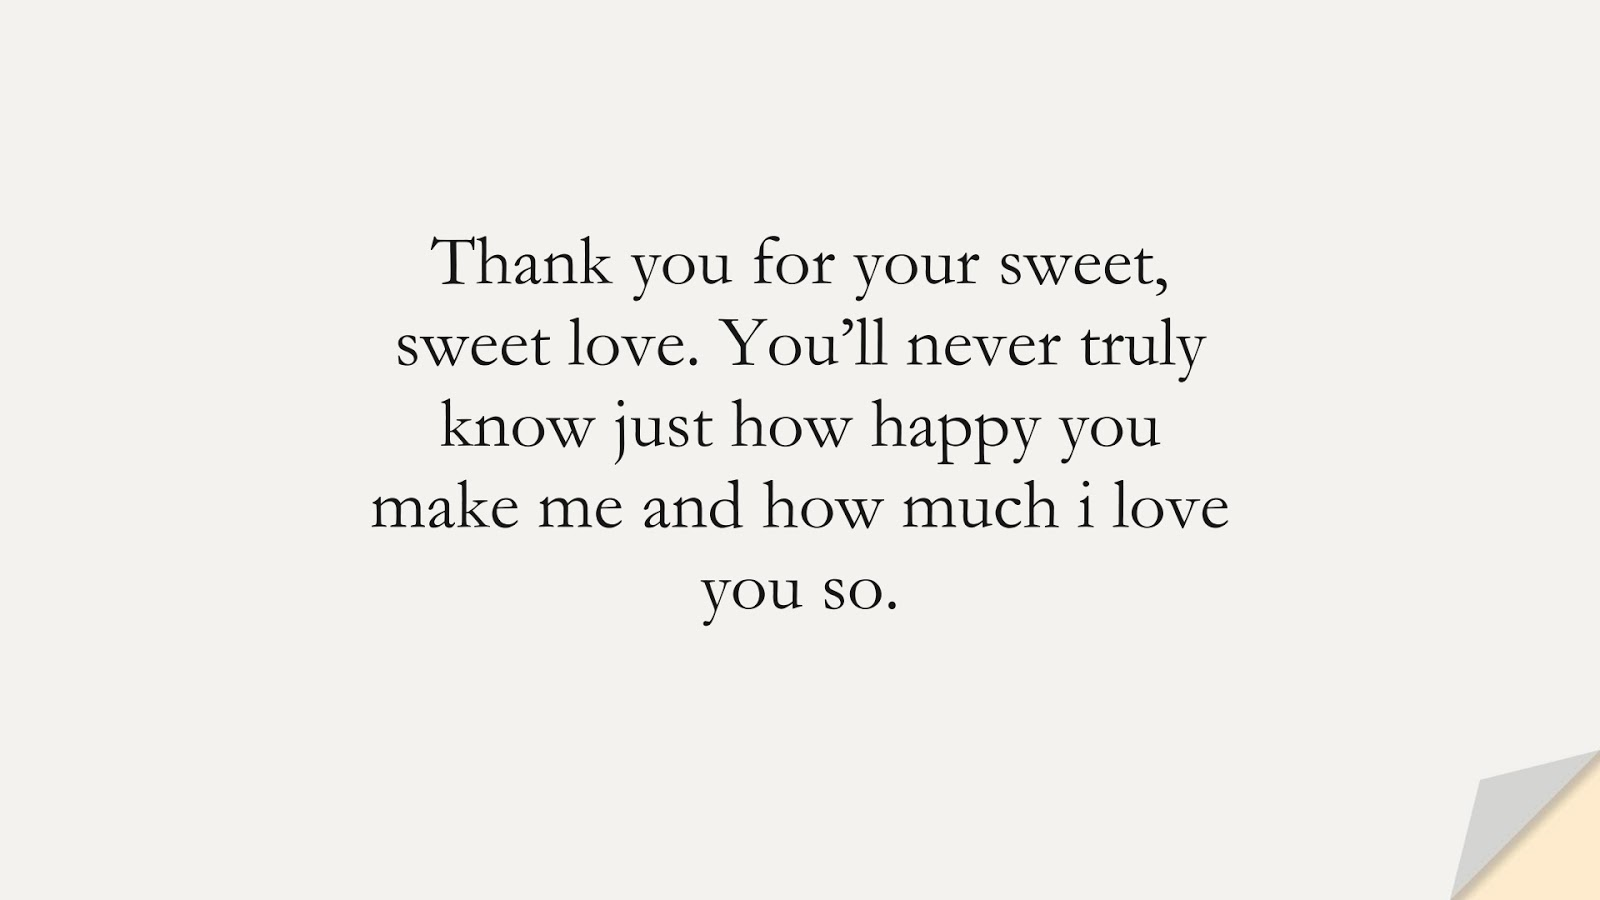 Thank you for your sweet, sweet love. You'll never truly know just how happy you make me and how much i love you so.FALSE